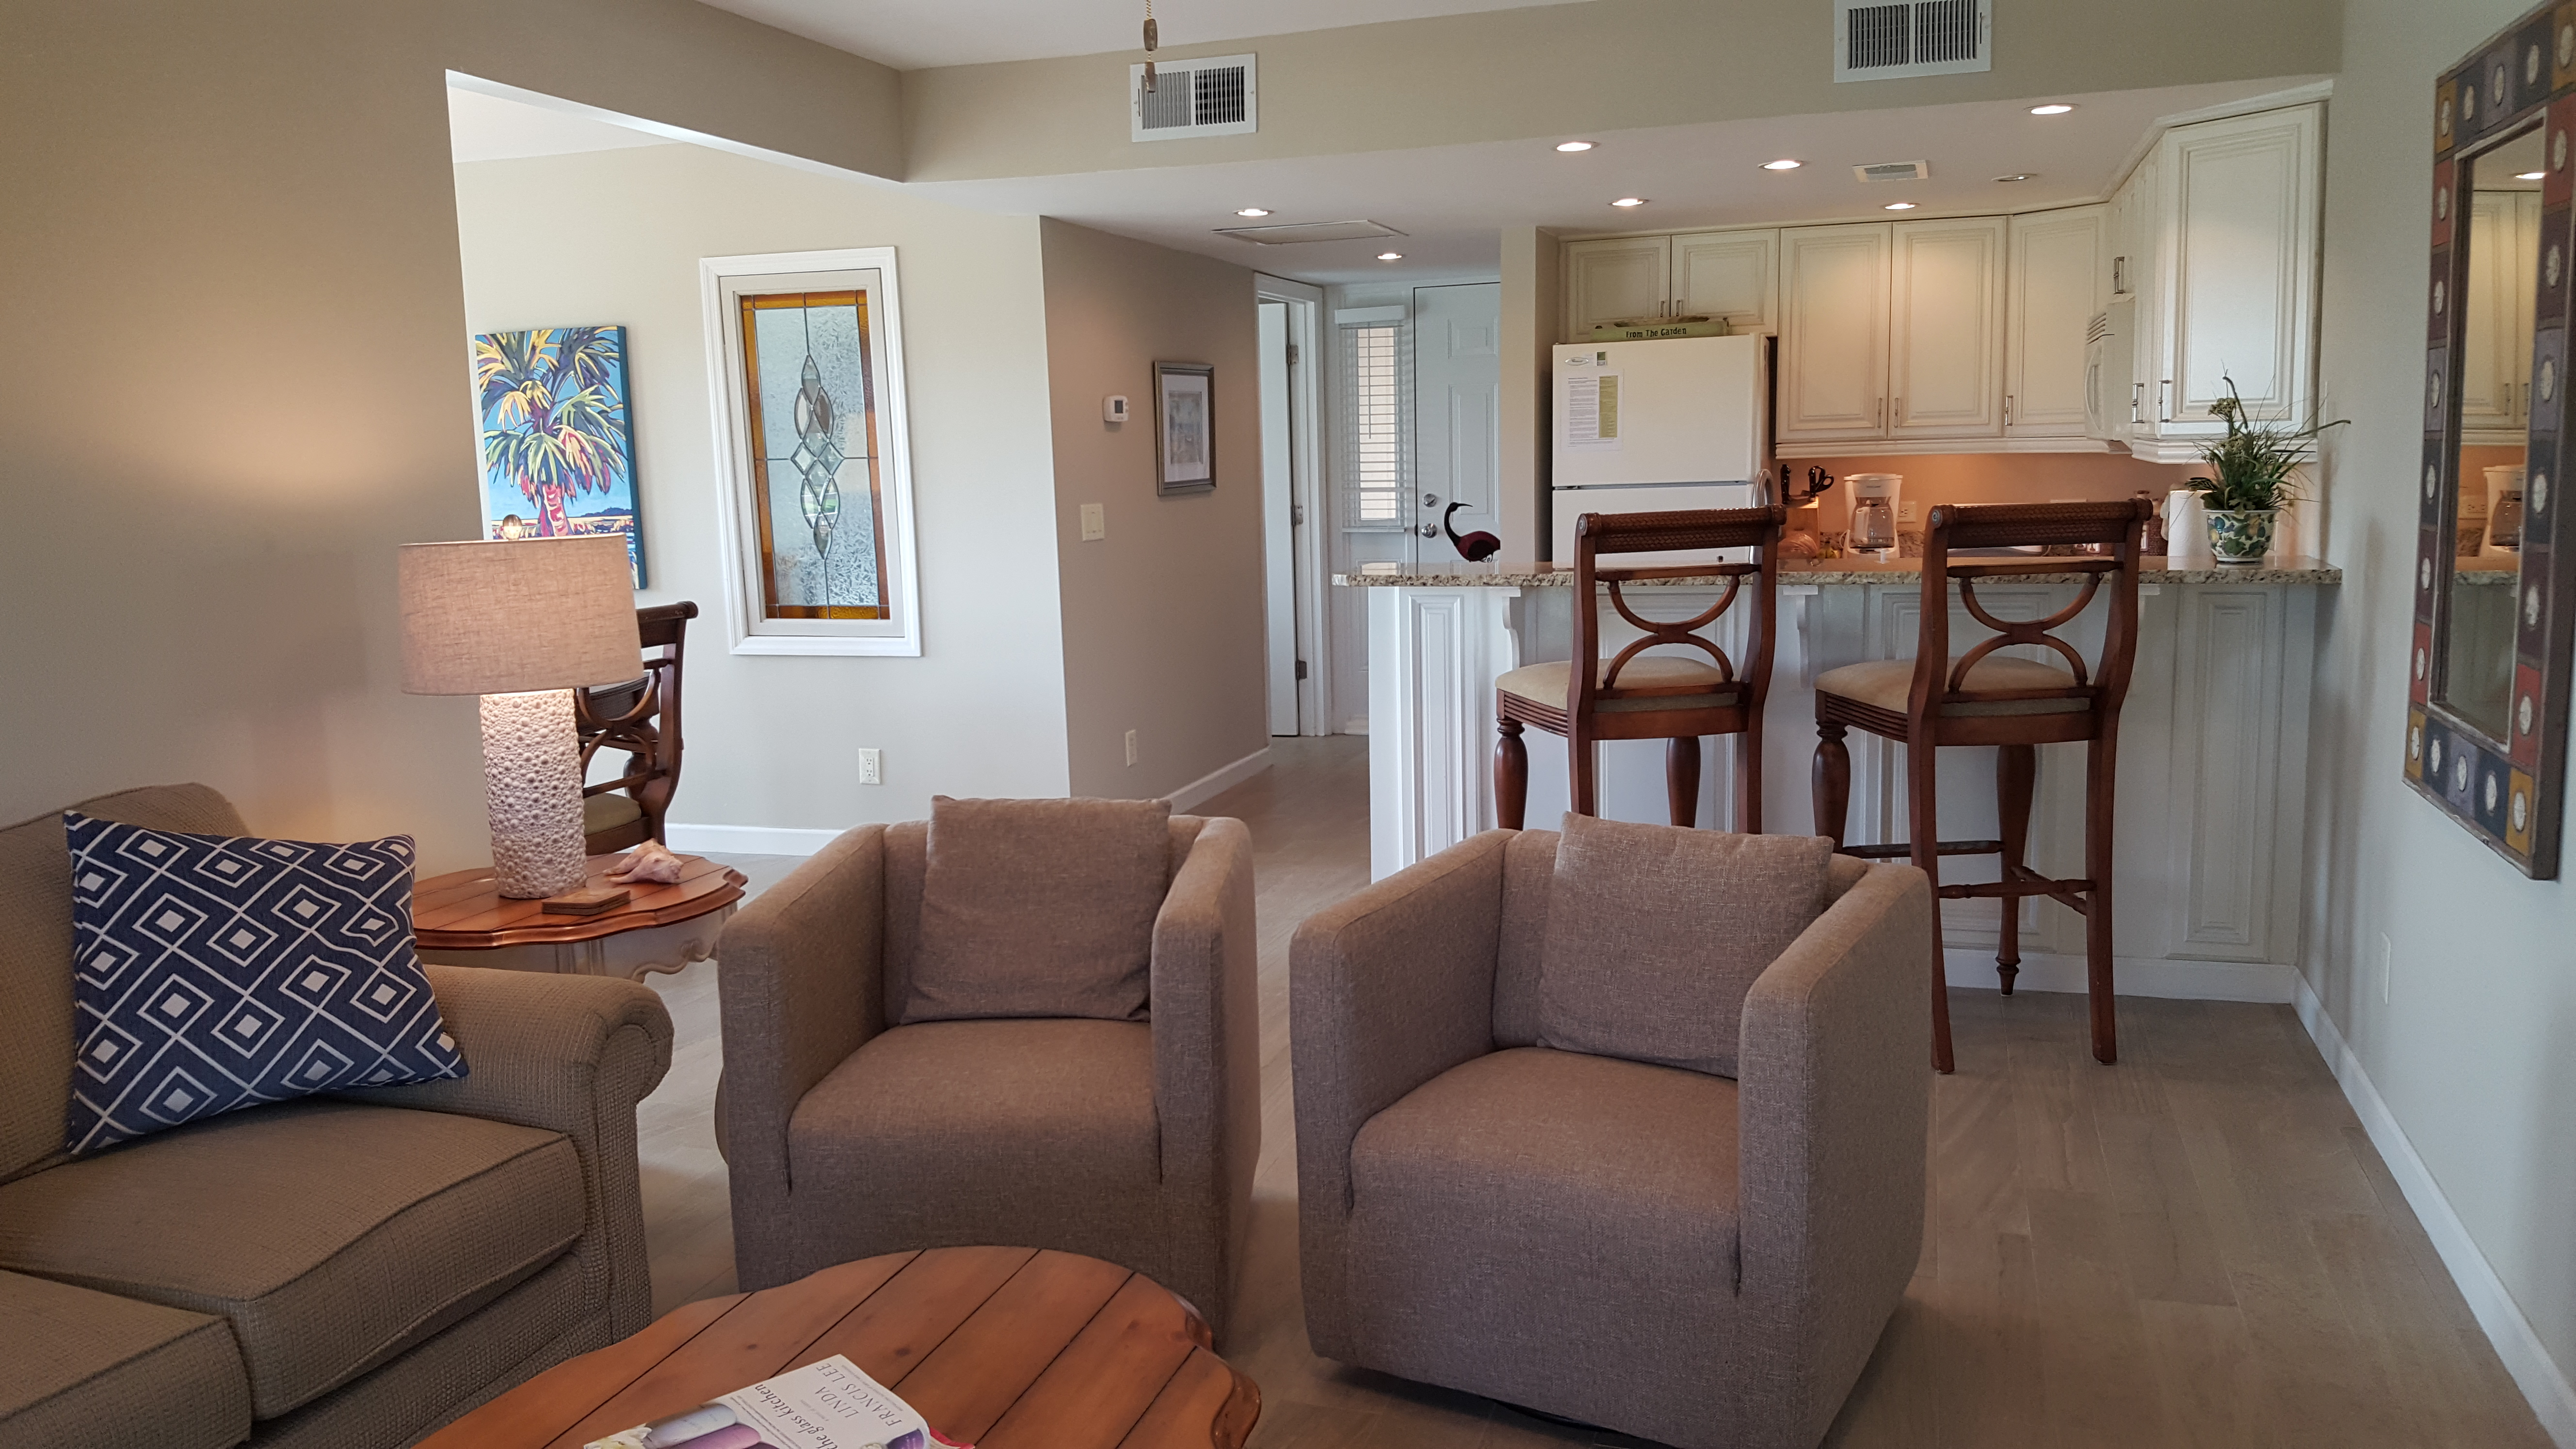 Living room seating group towards kitchen, breakfast counter, and entry hall.